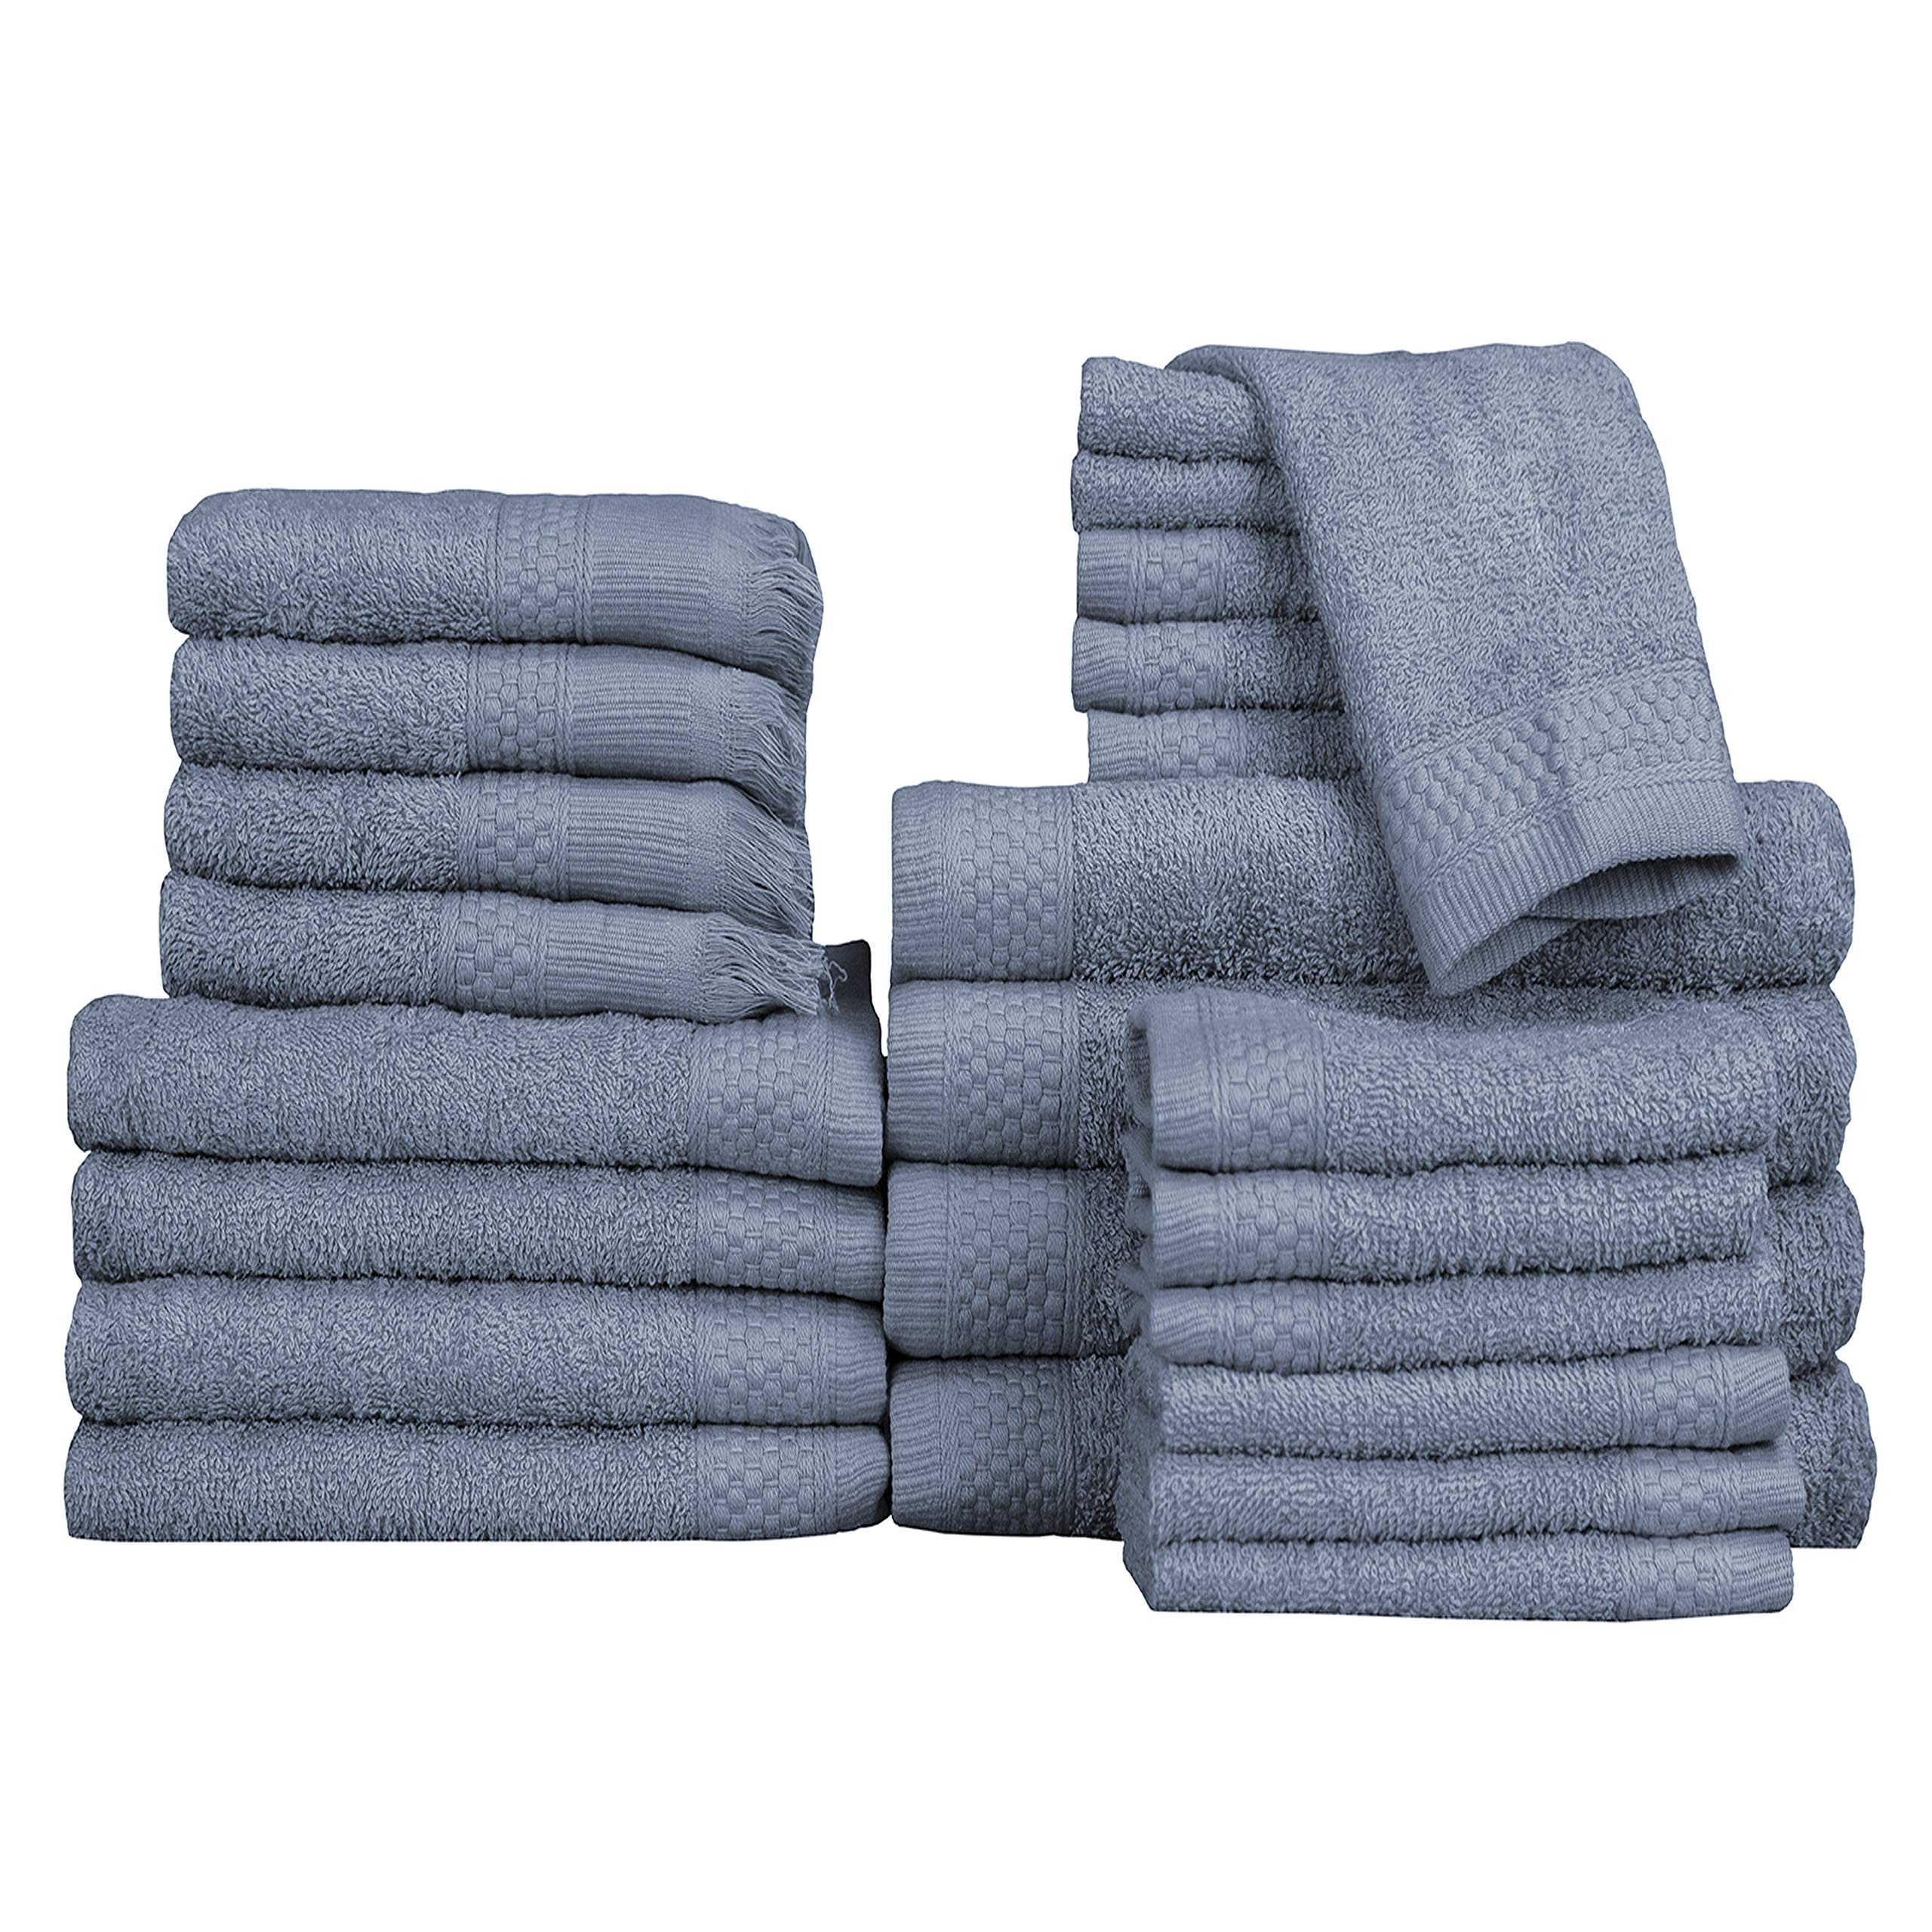 Baltic Linen Multi Count 100% Cotton Towels, 4 Bath Towels, 4 Hand Towels, 4 Fringed Fingertips, 12 Washcloths, Smoke Blue, 24 Piece Set